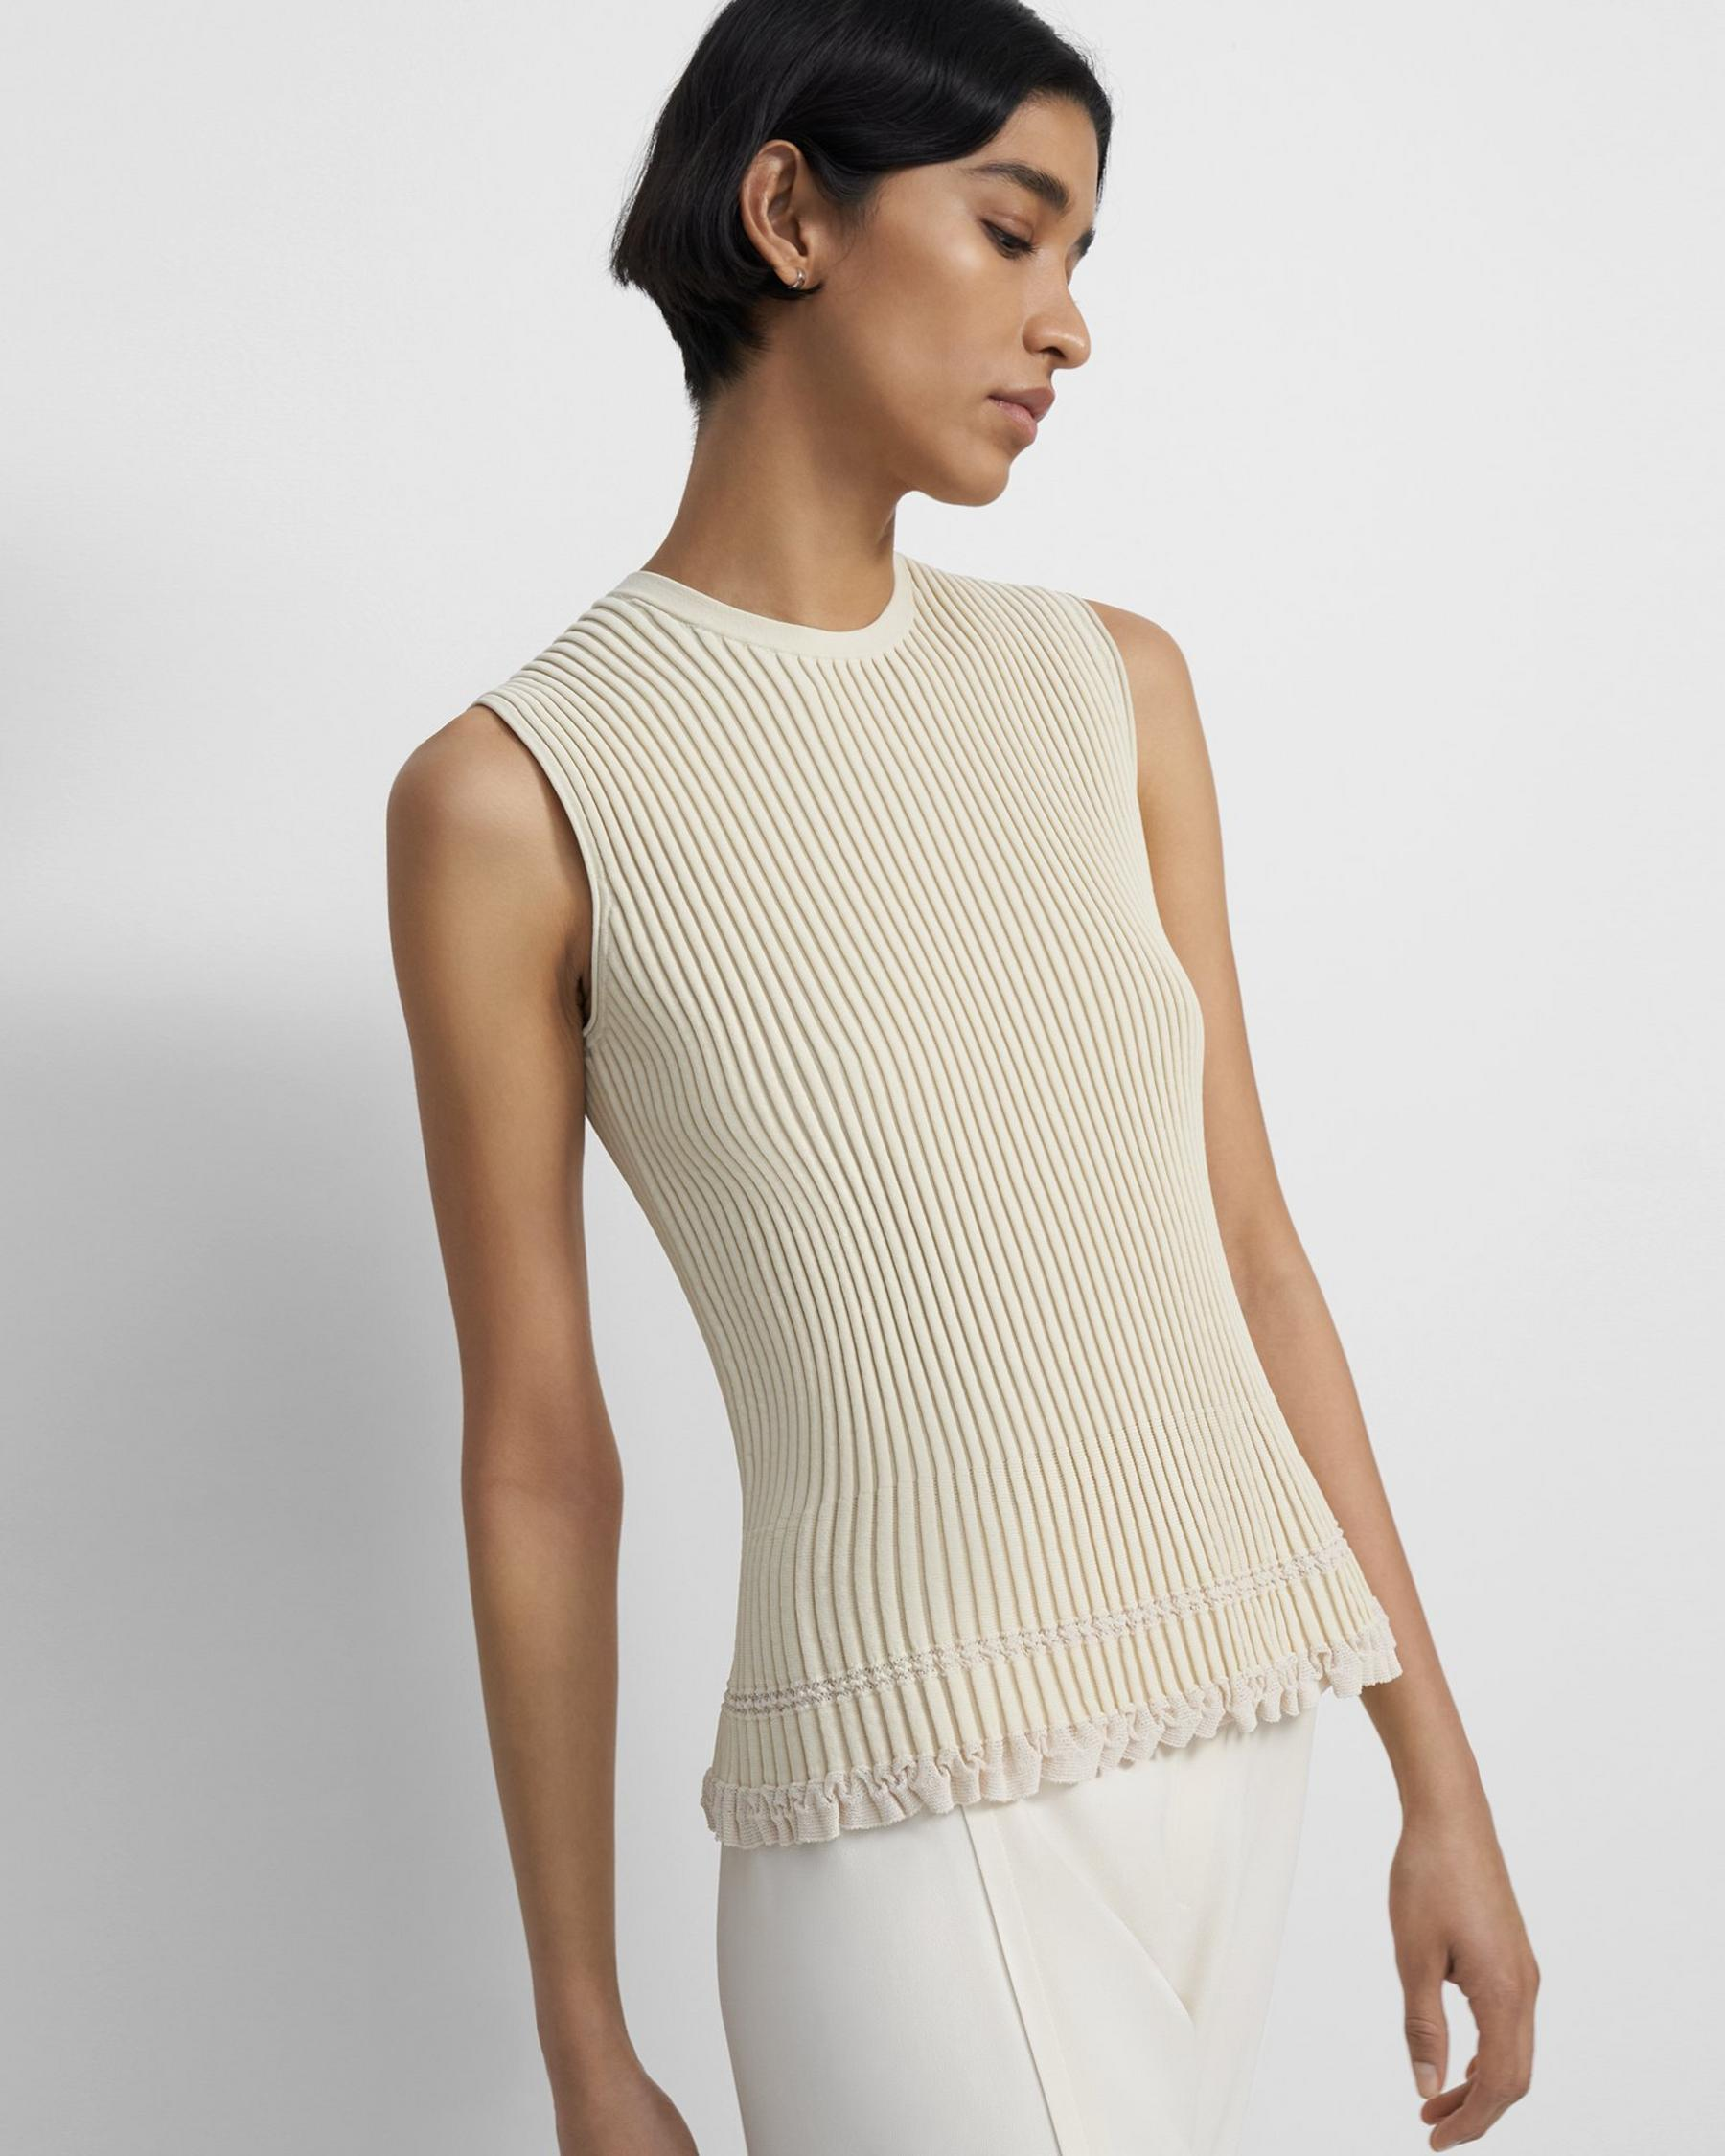 Shell Top in Eco Knit 1